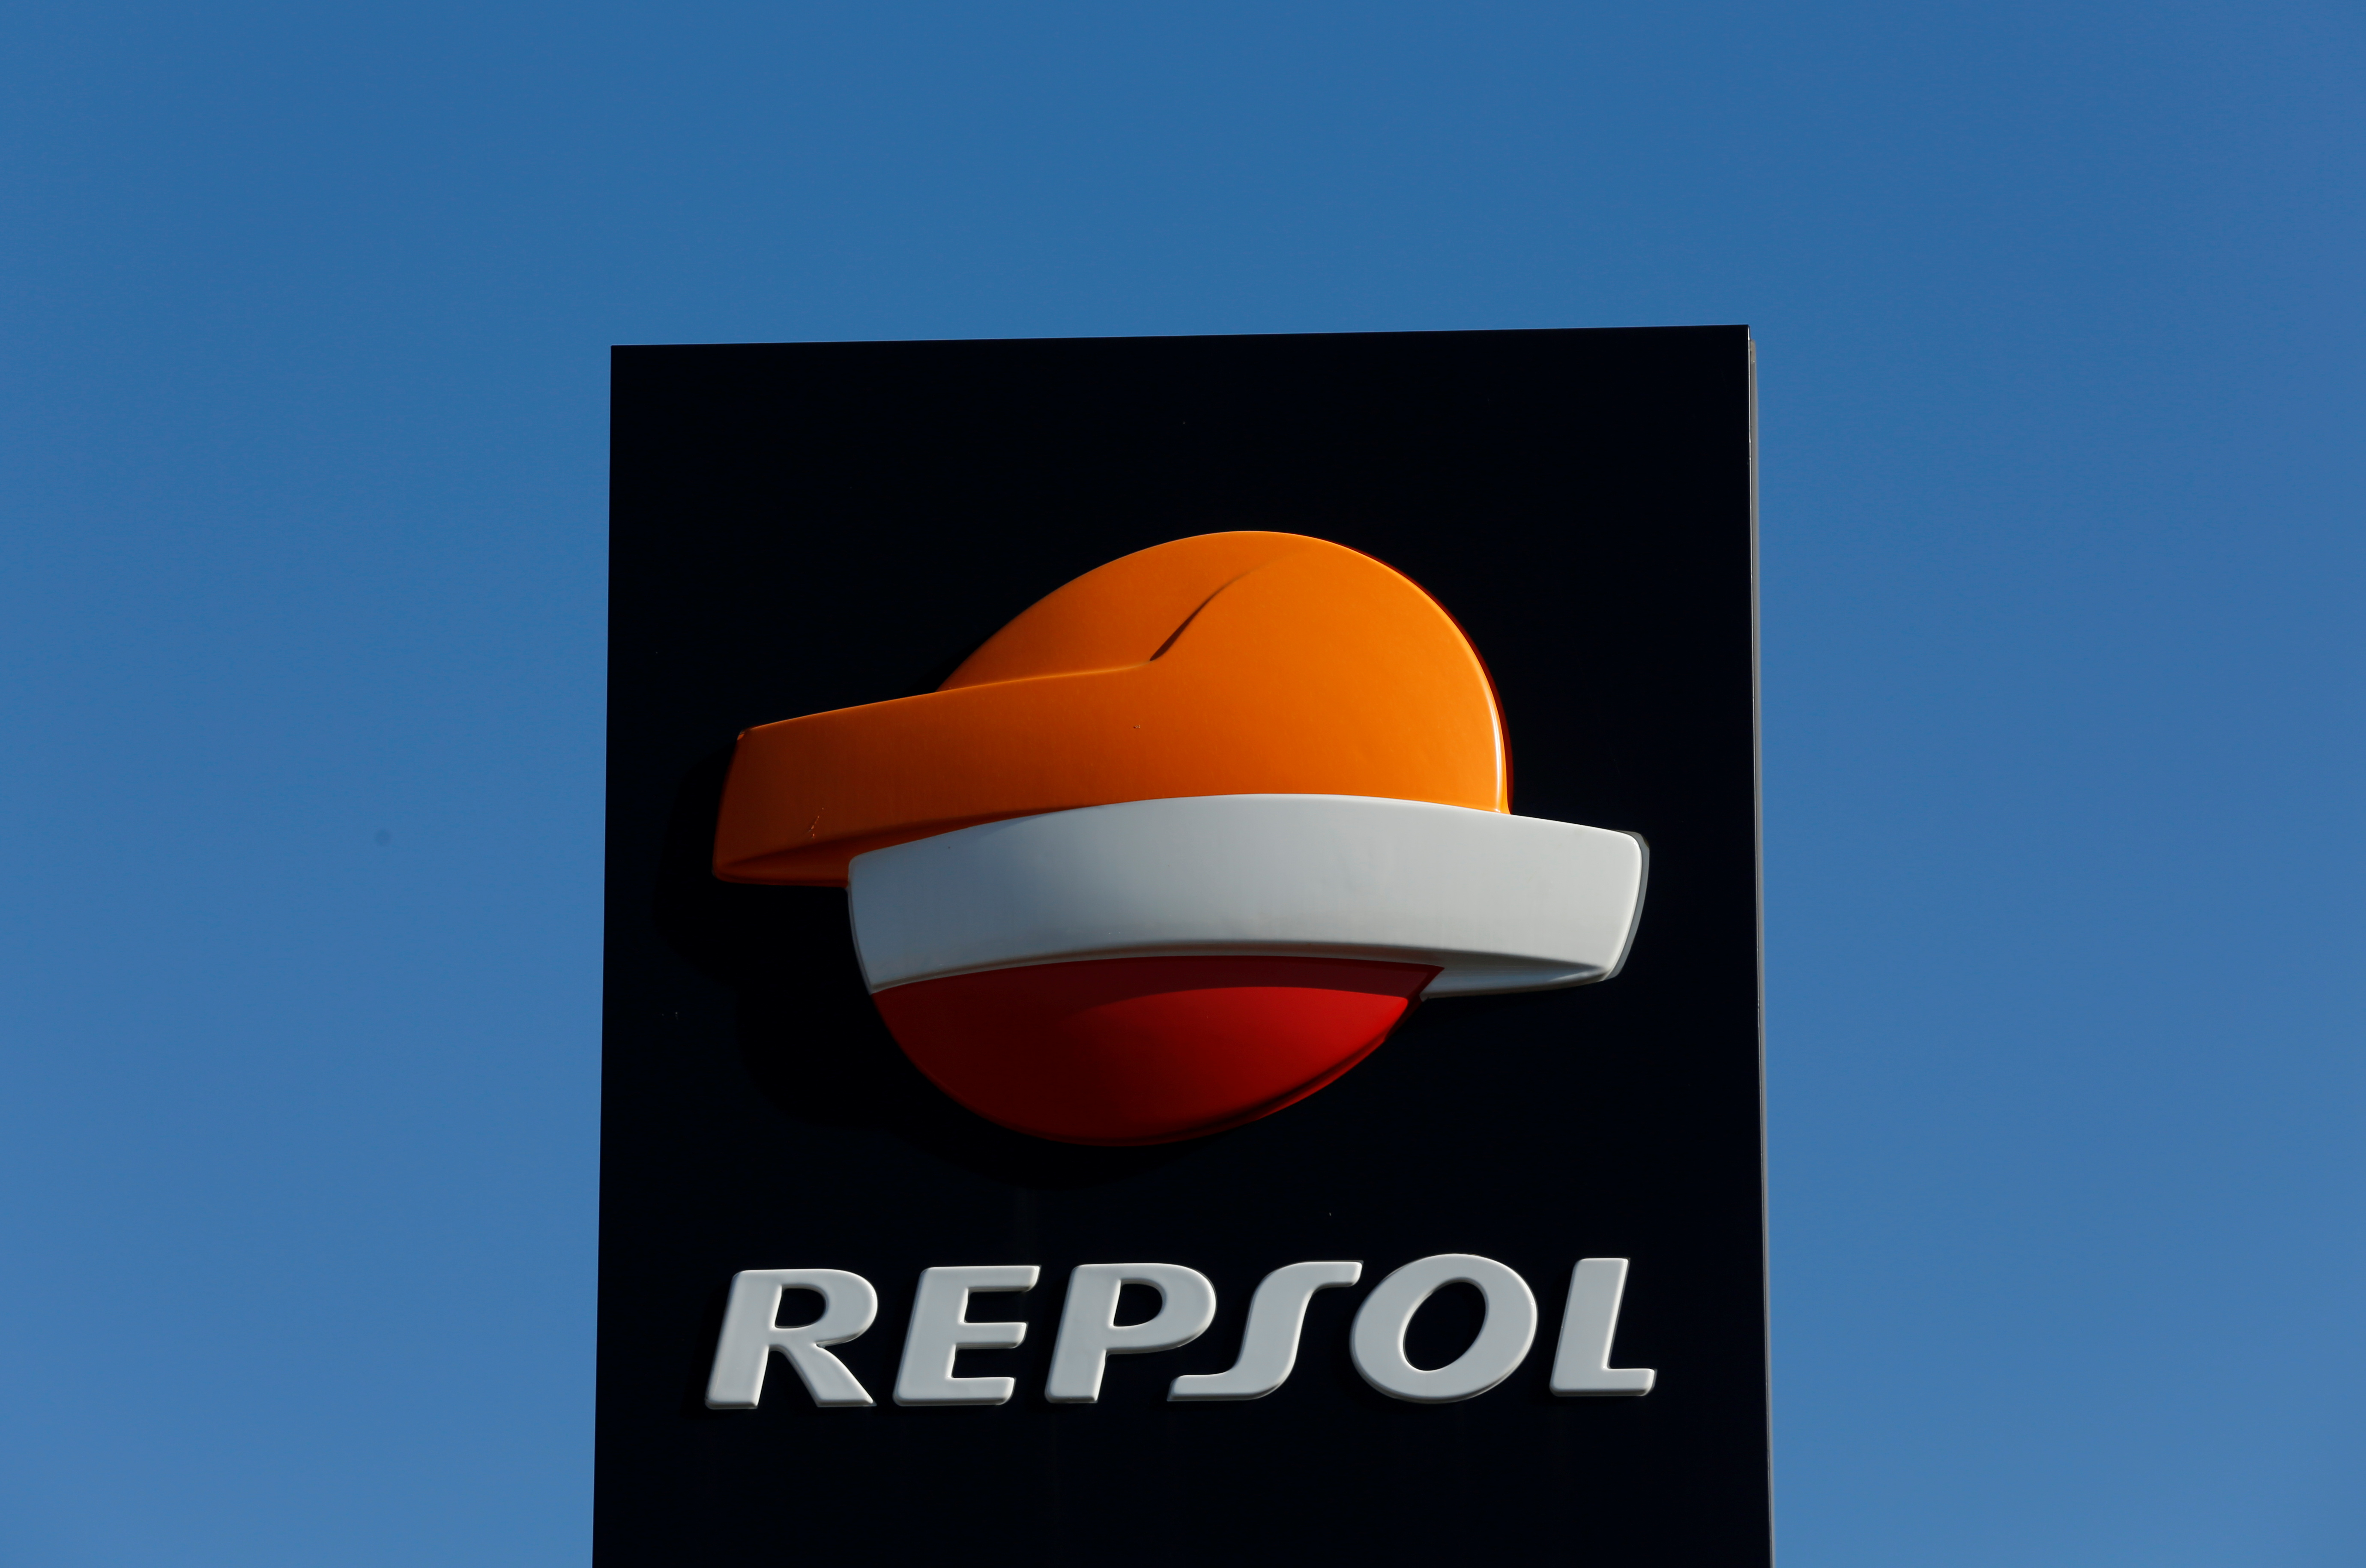 A Repsol logo at a petrol station in Bormujos near the Andalusian capital of Seville, southern Spain March 3, 2016. REUTERS/Marcelo del Pozo